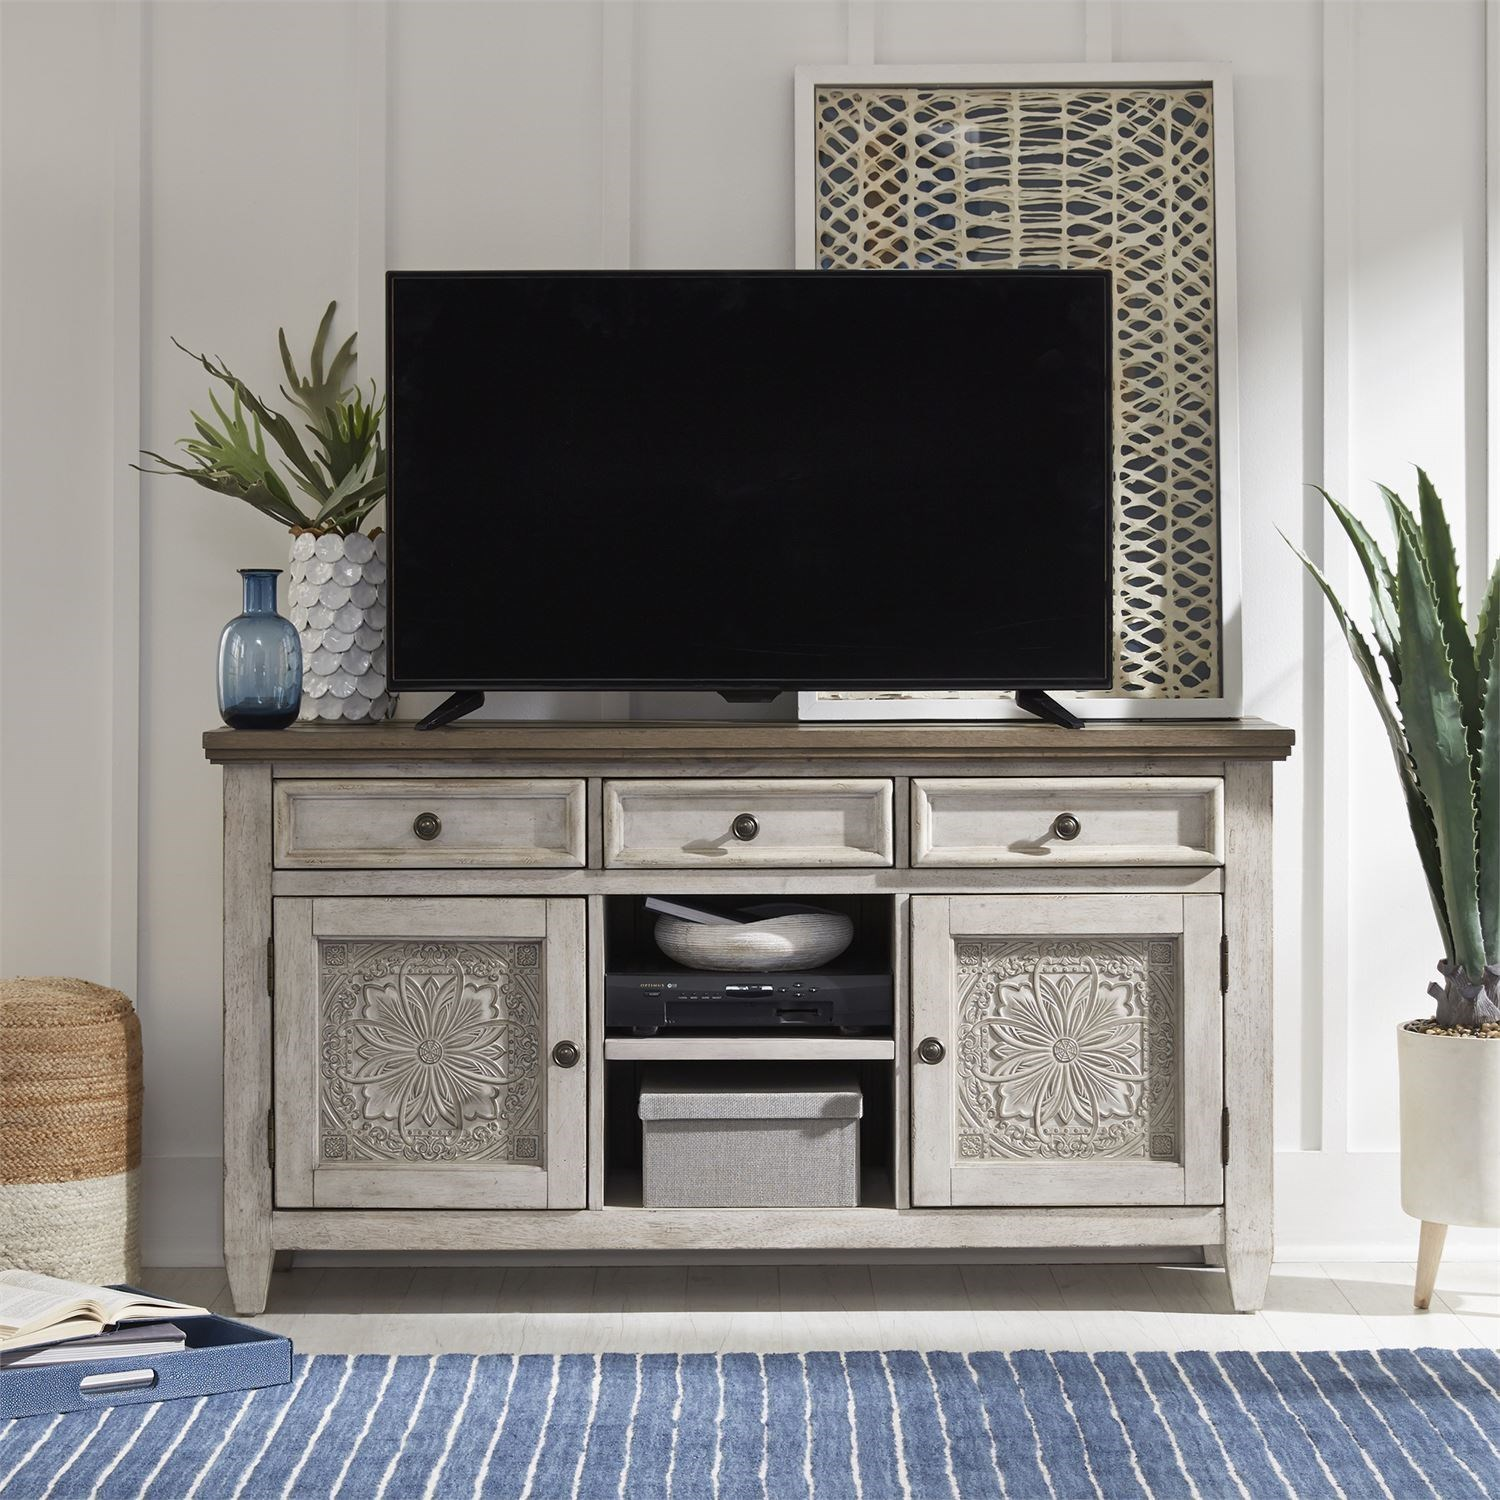 Transitional 56 Inch Tile TV Console